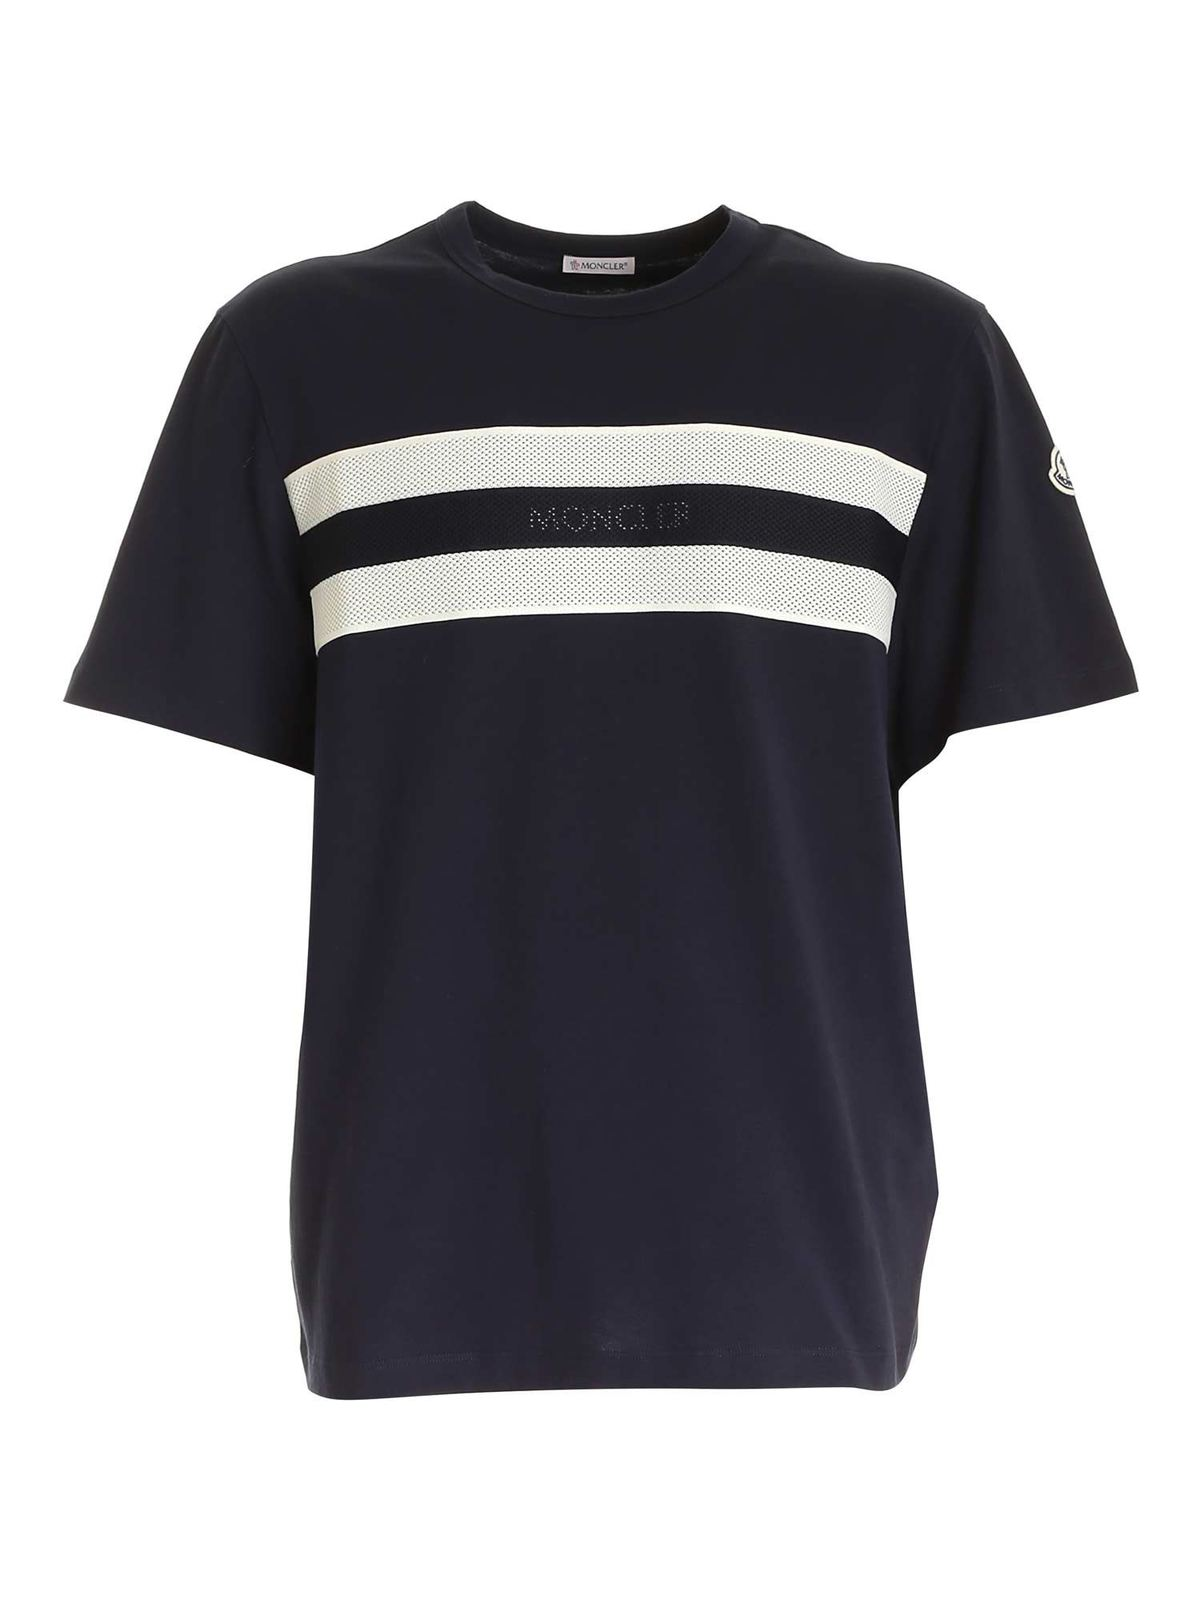 Moncler LOGO DETAIL T-SHIRT IN BLUE